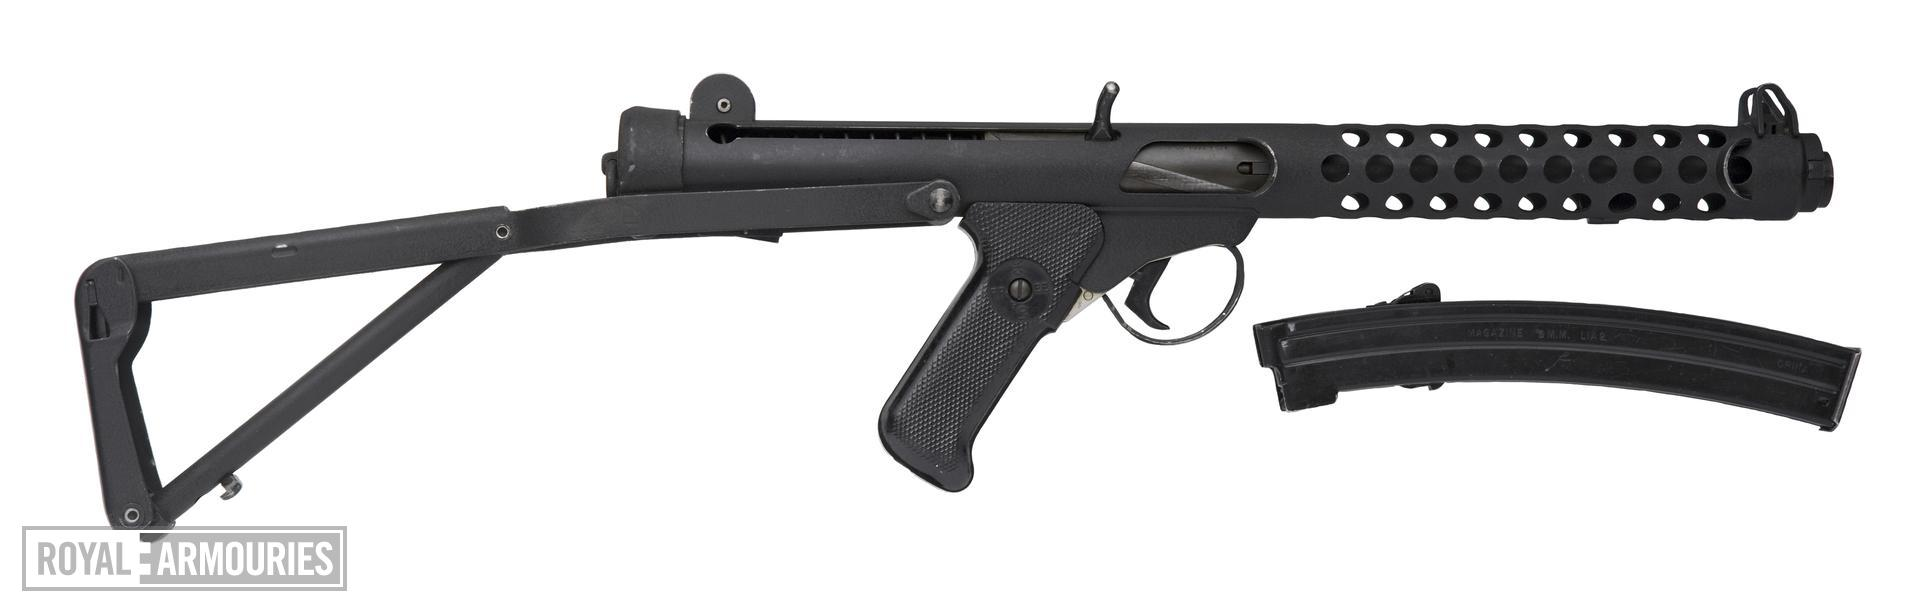 Centrefire automatic submachine gun - Sterling Mk.4 (L2A3) commercial model the very first commercial production gun